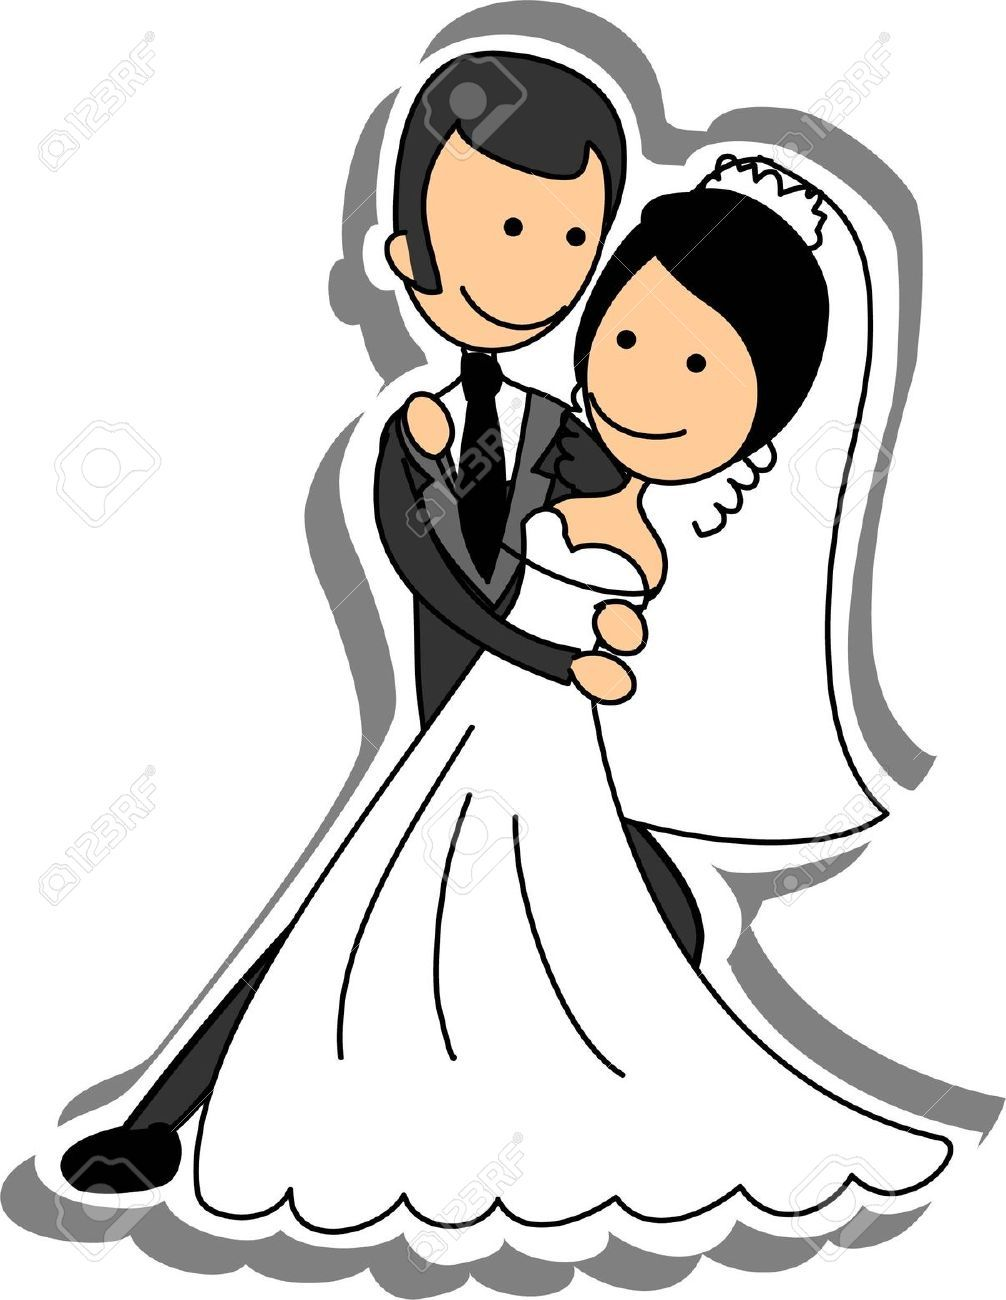 small resolution of wedding picture bride and groom in love royalty free cliparts